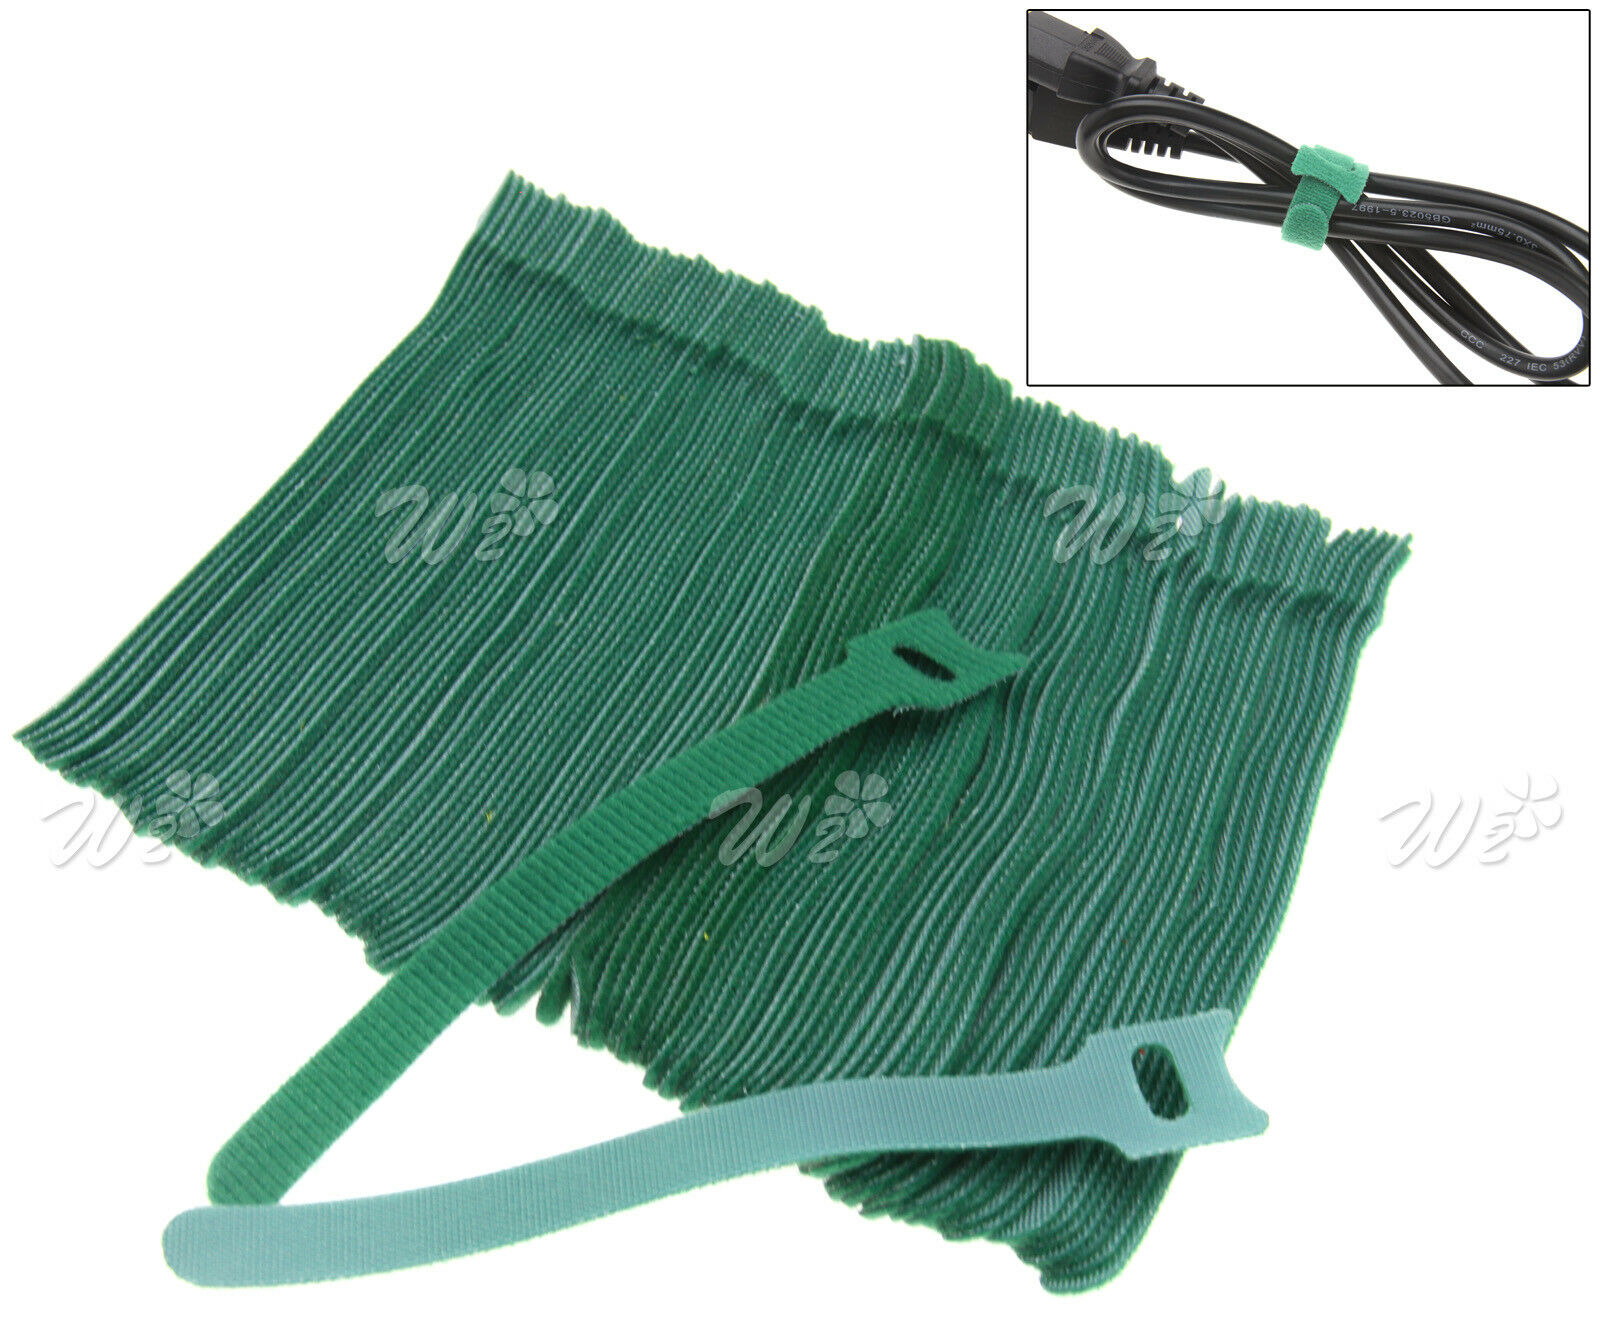 Funtional Nylon Strap Hook and Loop Cable Two Sided Cord Ties Tidy Organiser